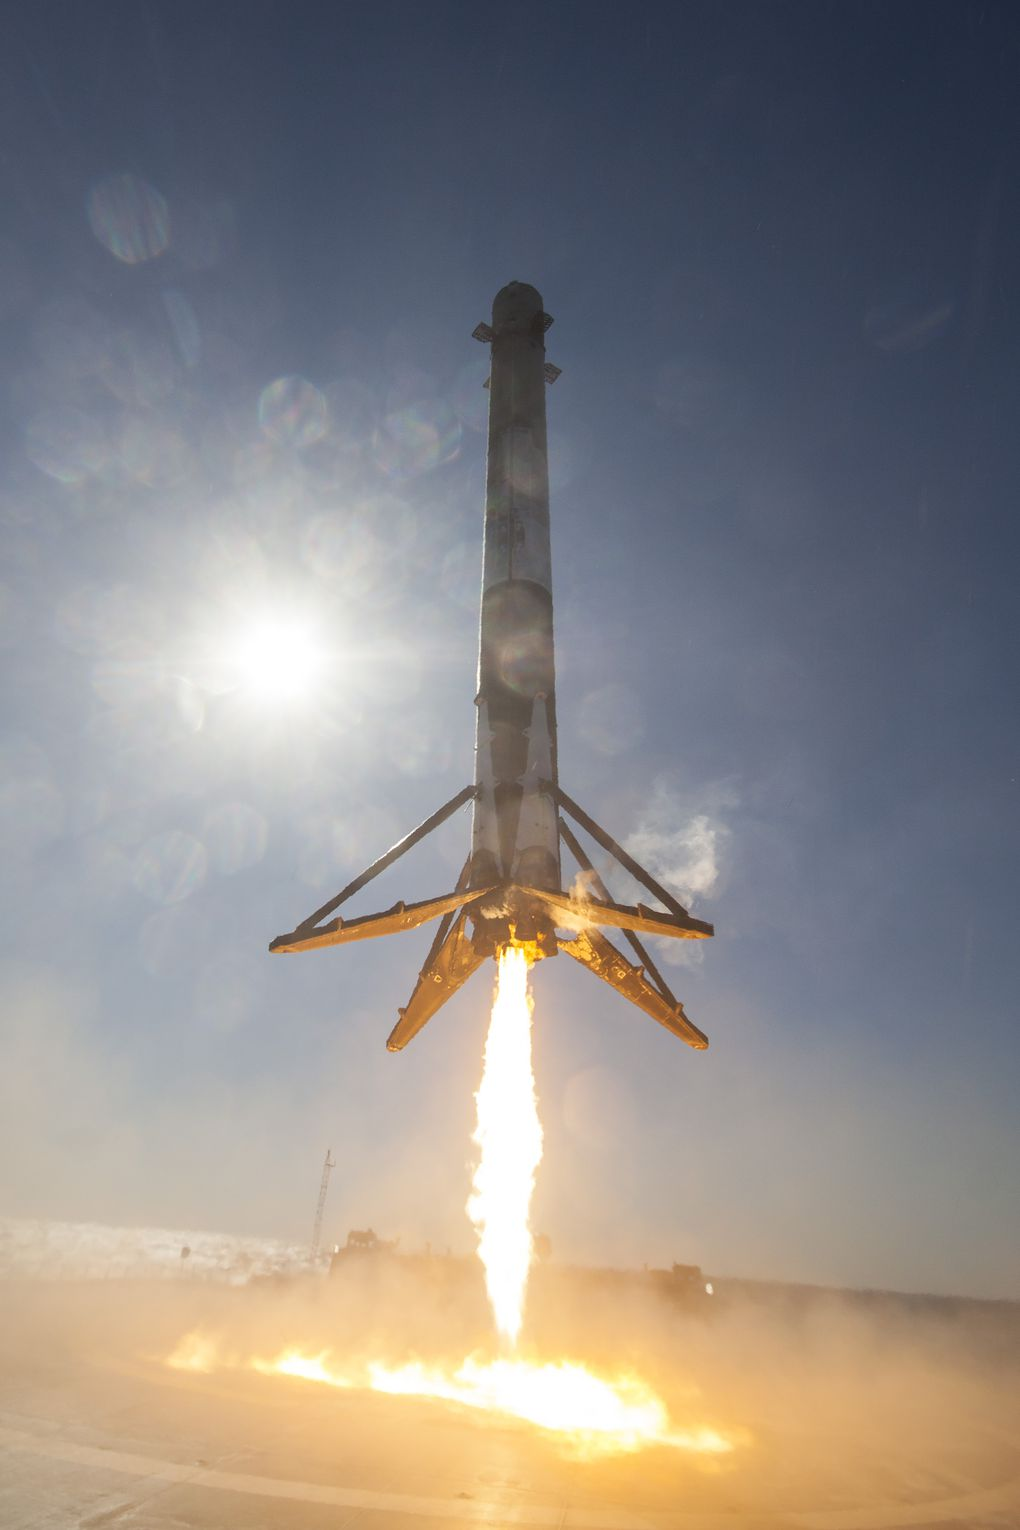 spacex model rocket - photo #26